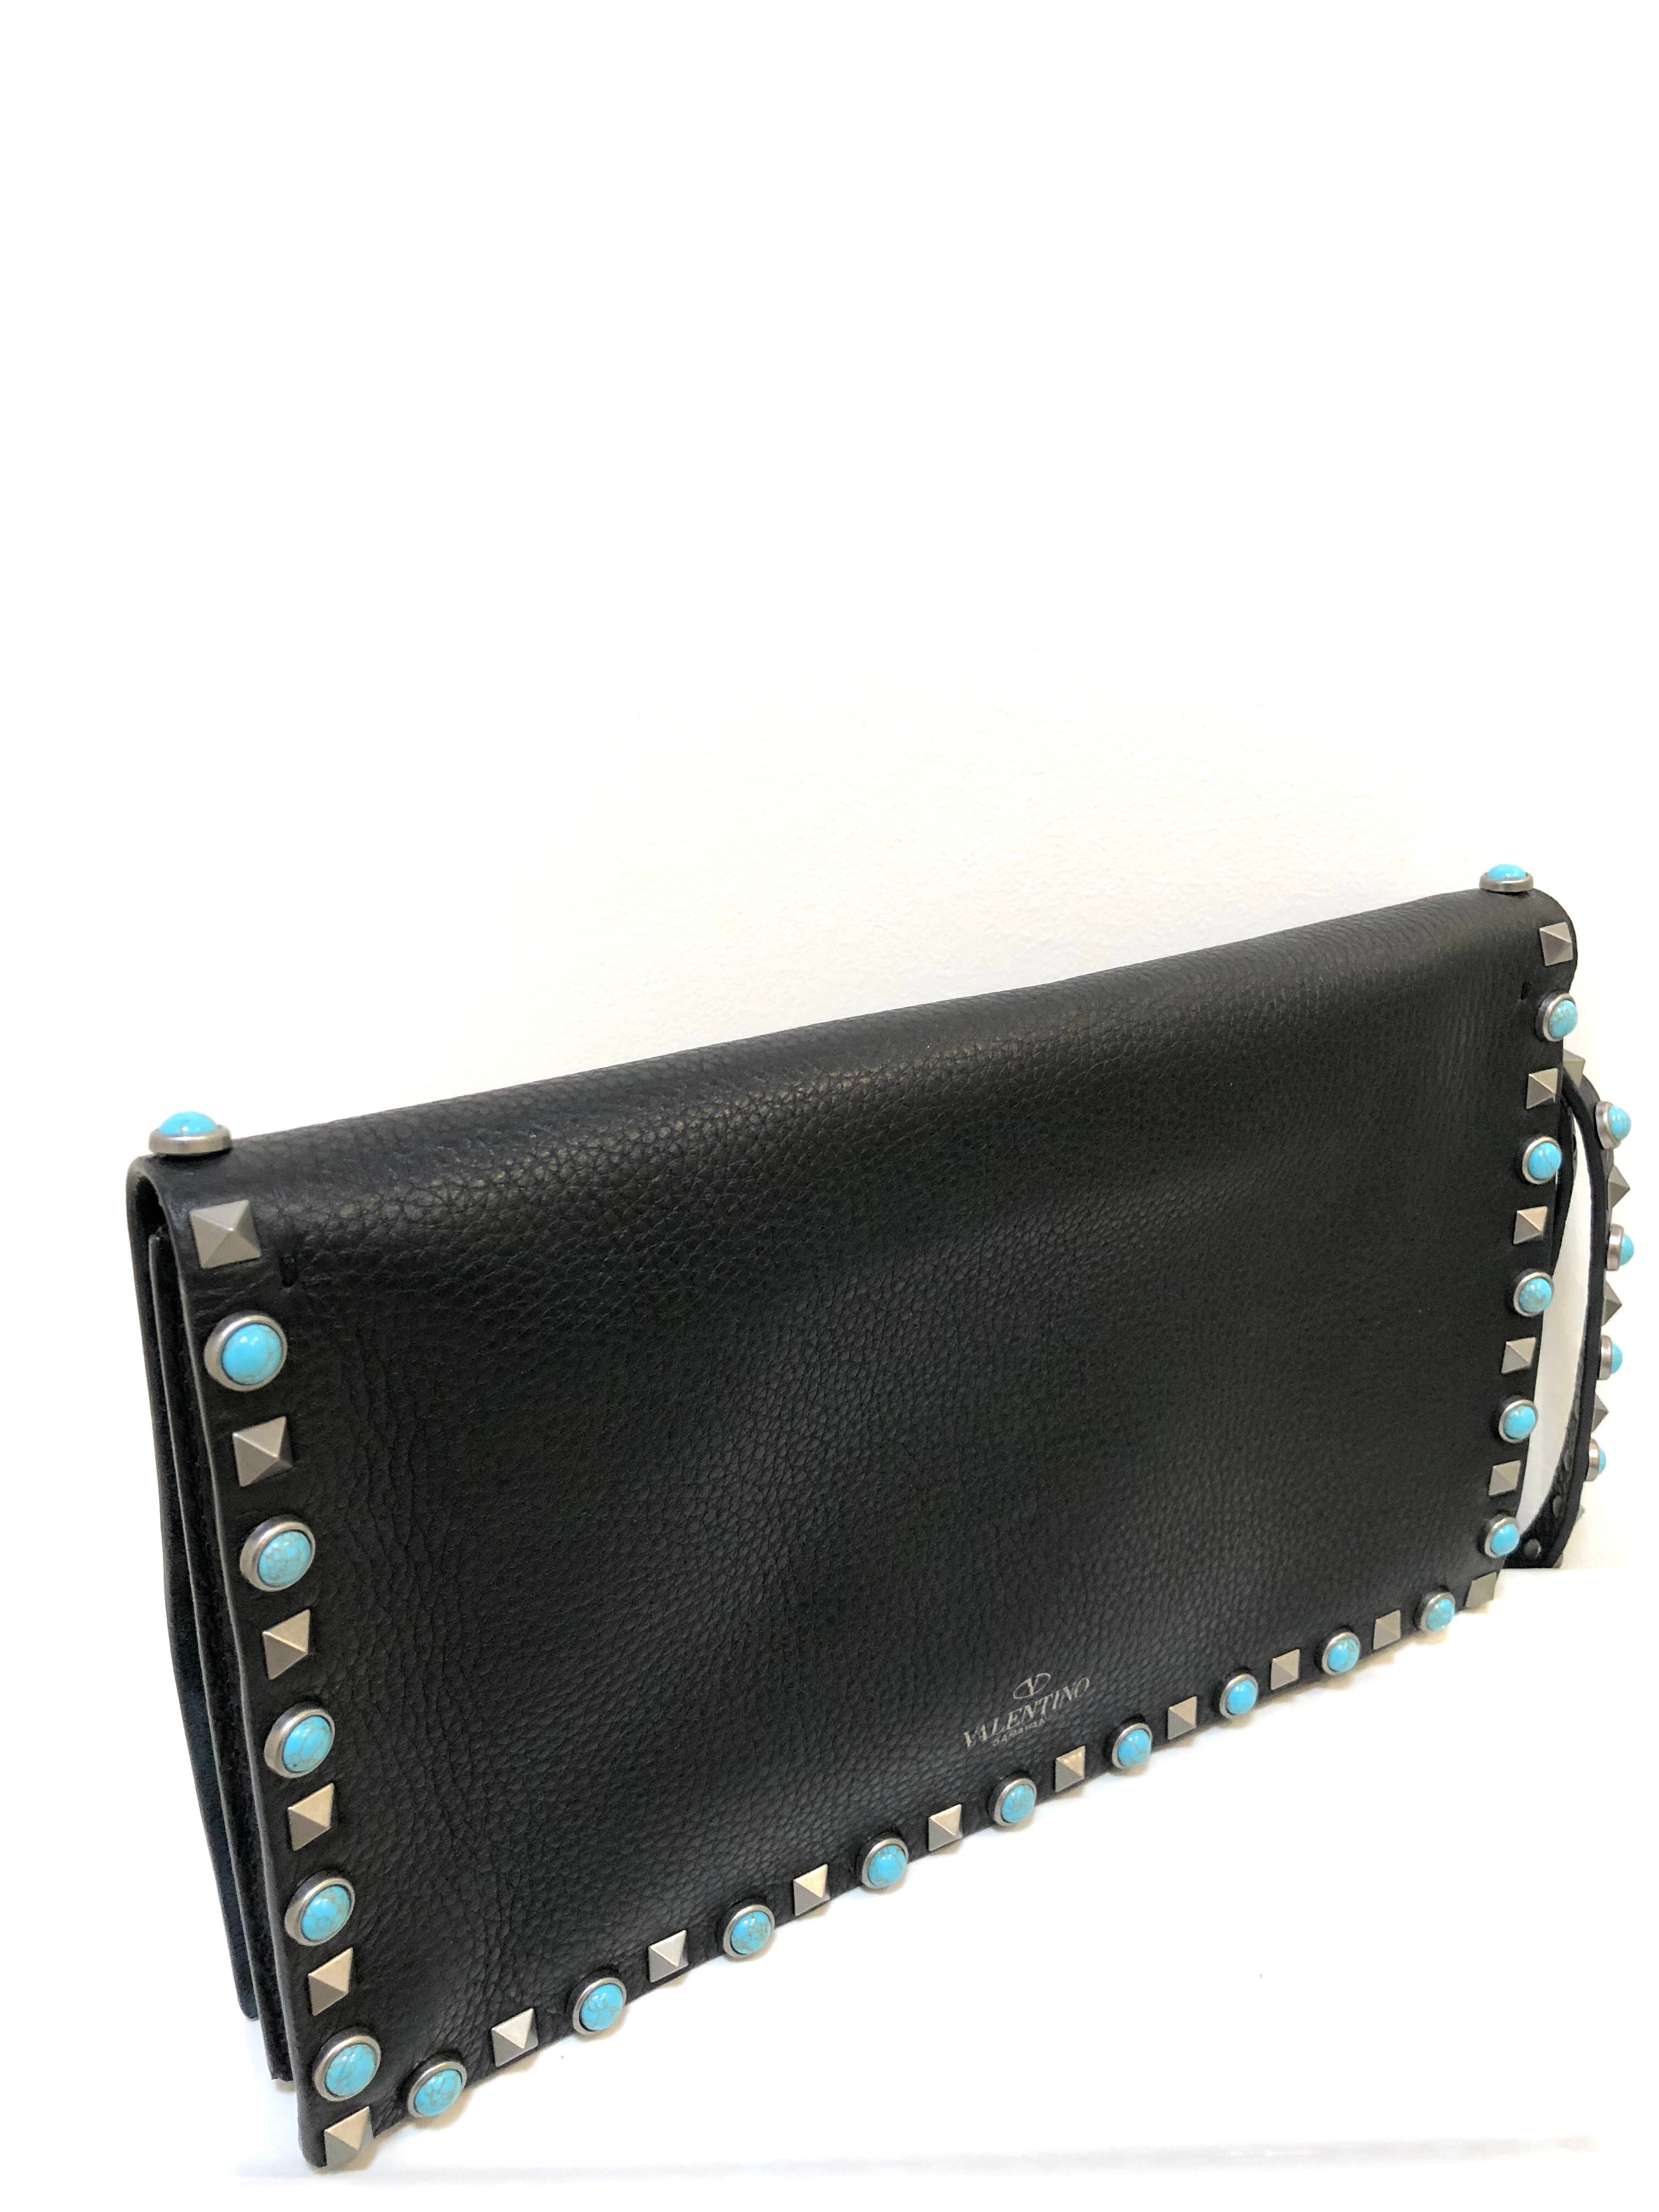 Valentino Black Leather with Turquoise Rockstud Rolling Bead Wristlet Clutch Bag